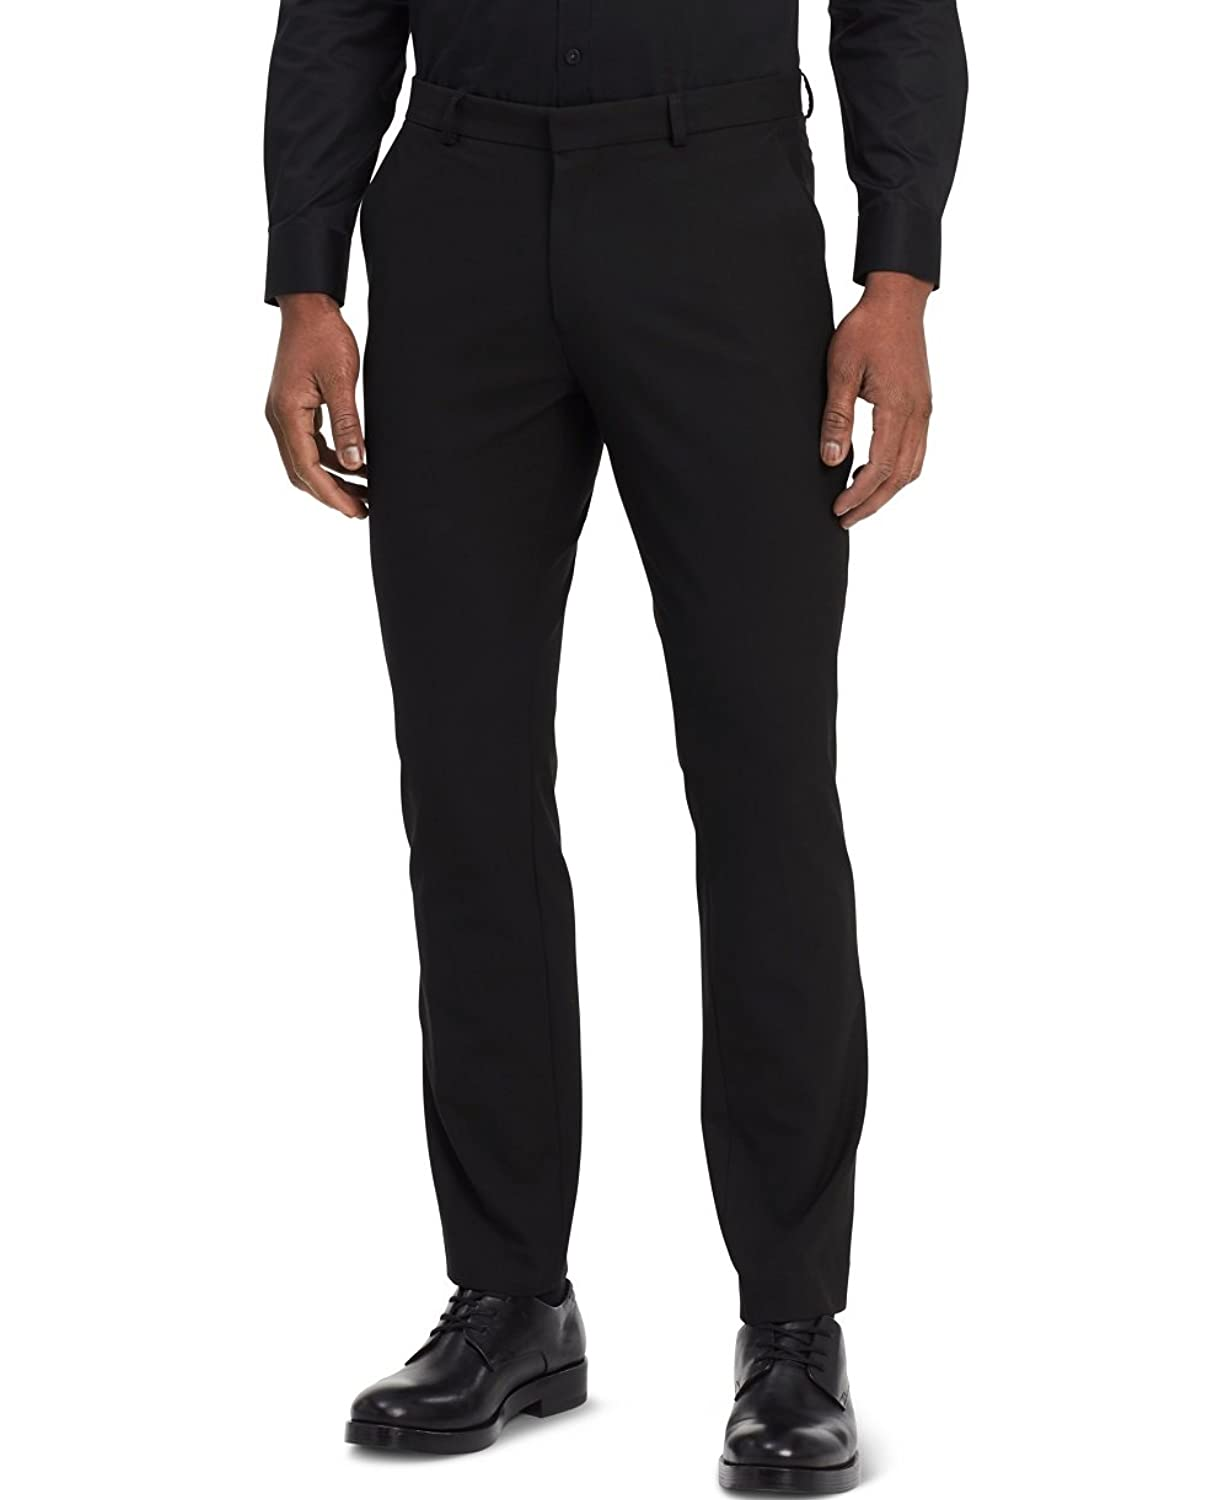 a820d55710f8 Features an interior tab closure with zip fly 4-way stretch fabrication  allows for ultimate comfort during the work day. These Calvin Klein Suit  Pants ...